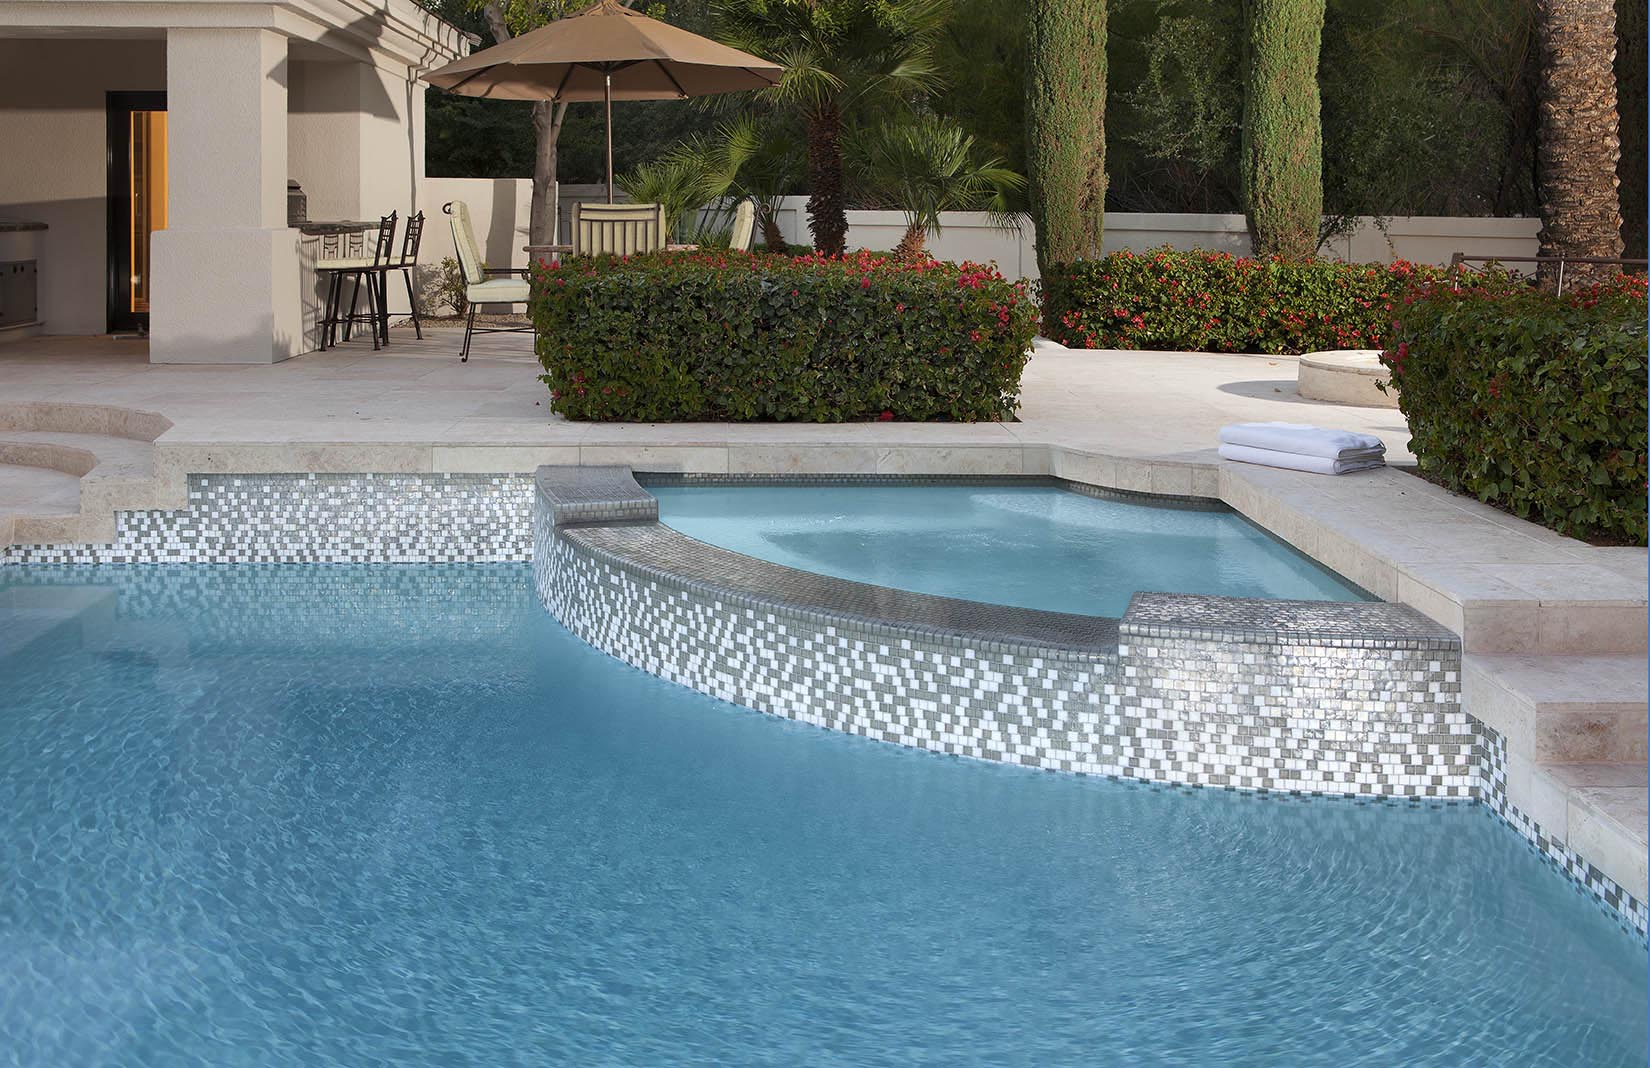 Tile coping for swimming pools backyard design ideas for Pool tile designs